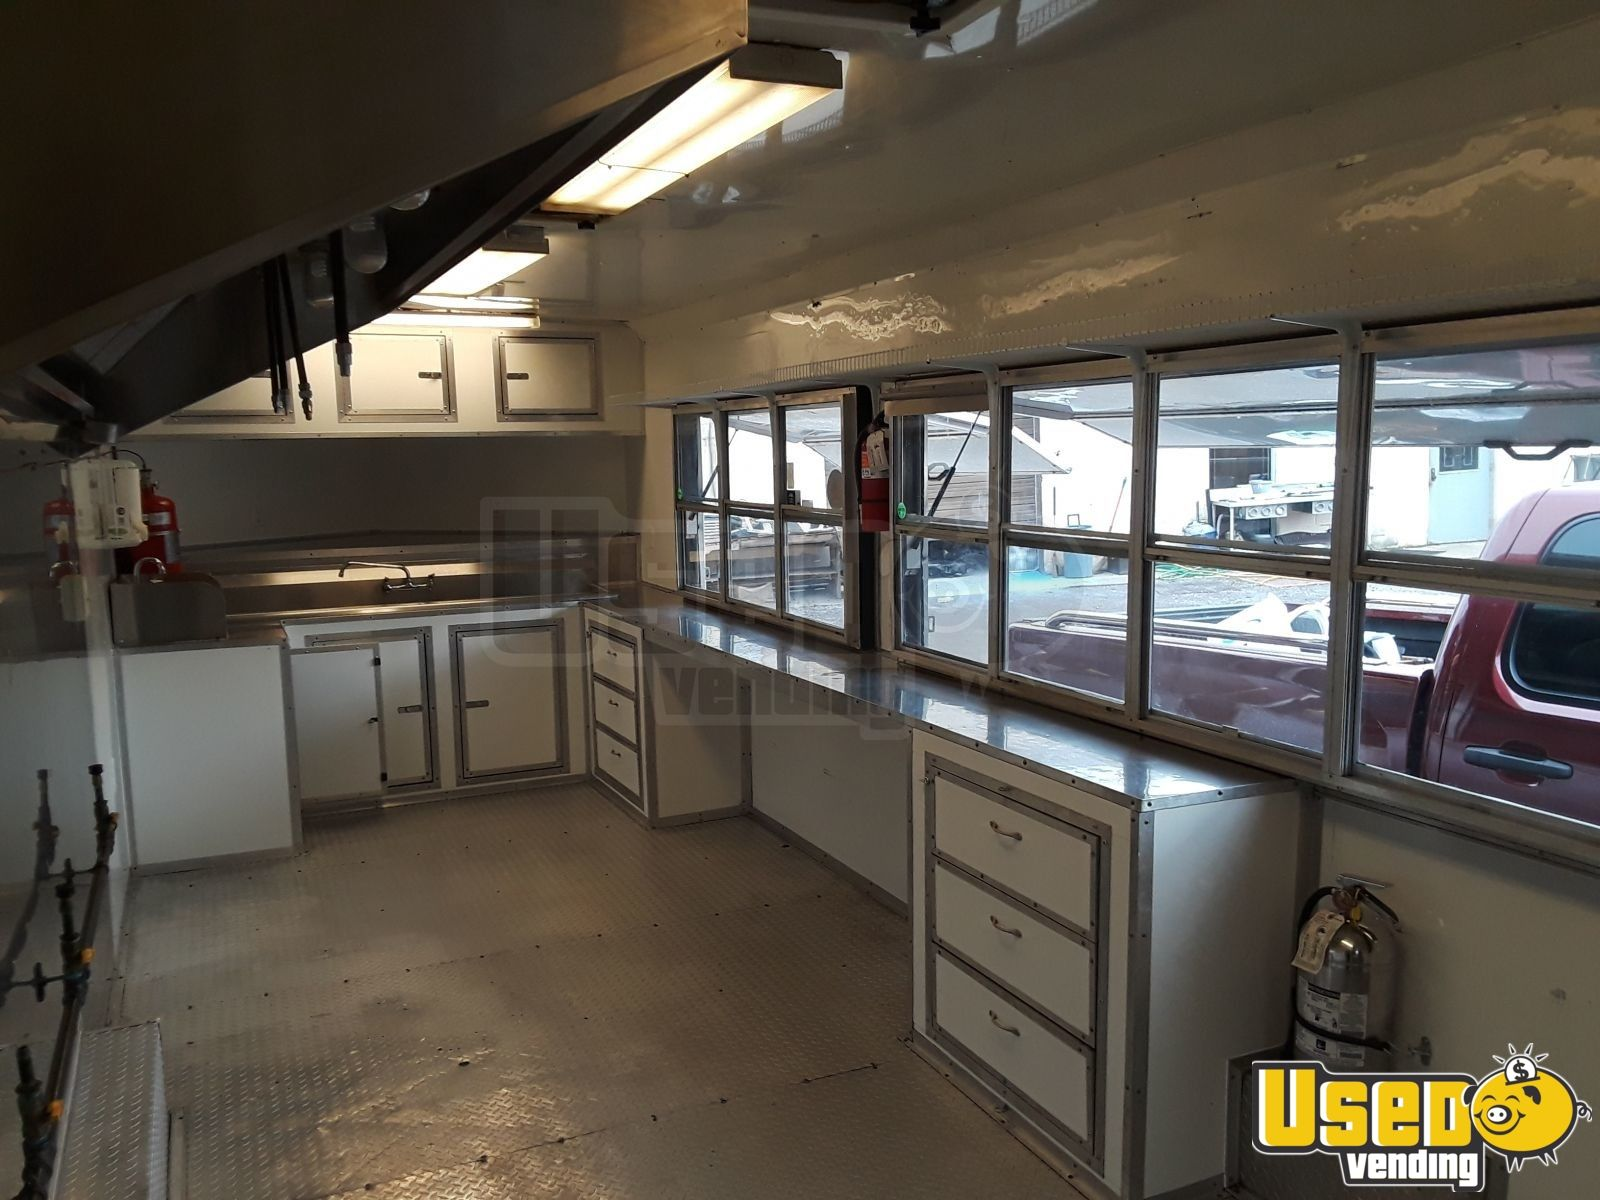 2016 Freedom Trailer 85x Concession Trailer Oven Tennessee for Sale - 16